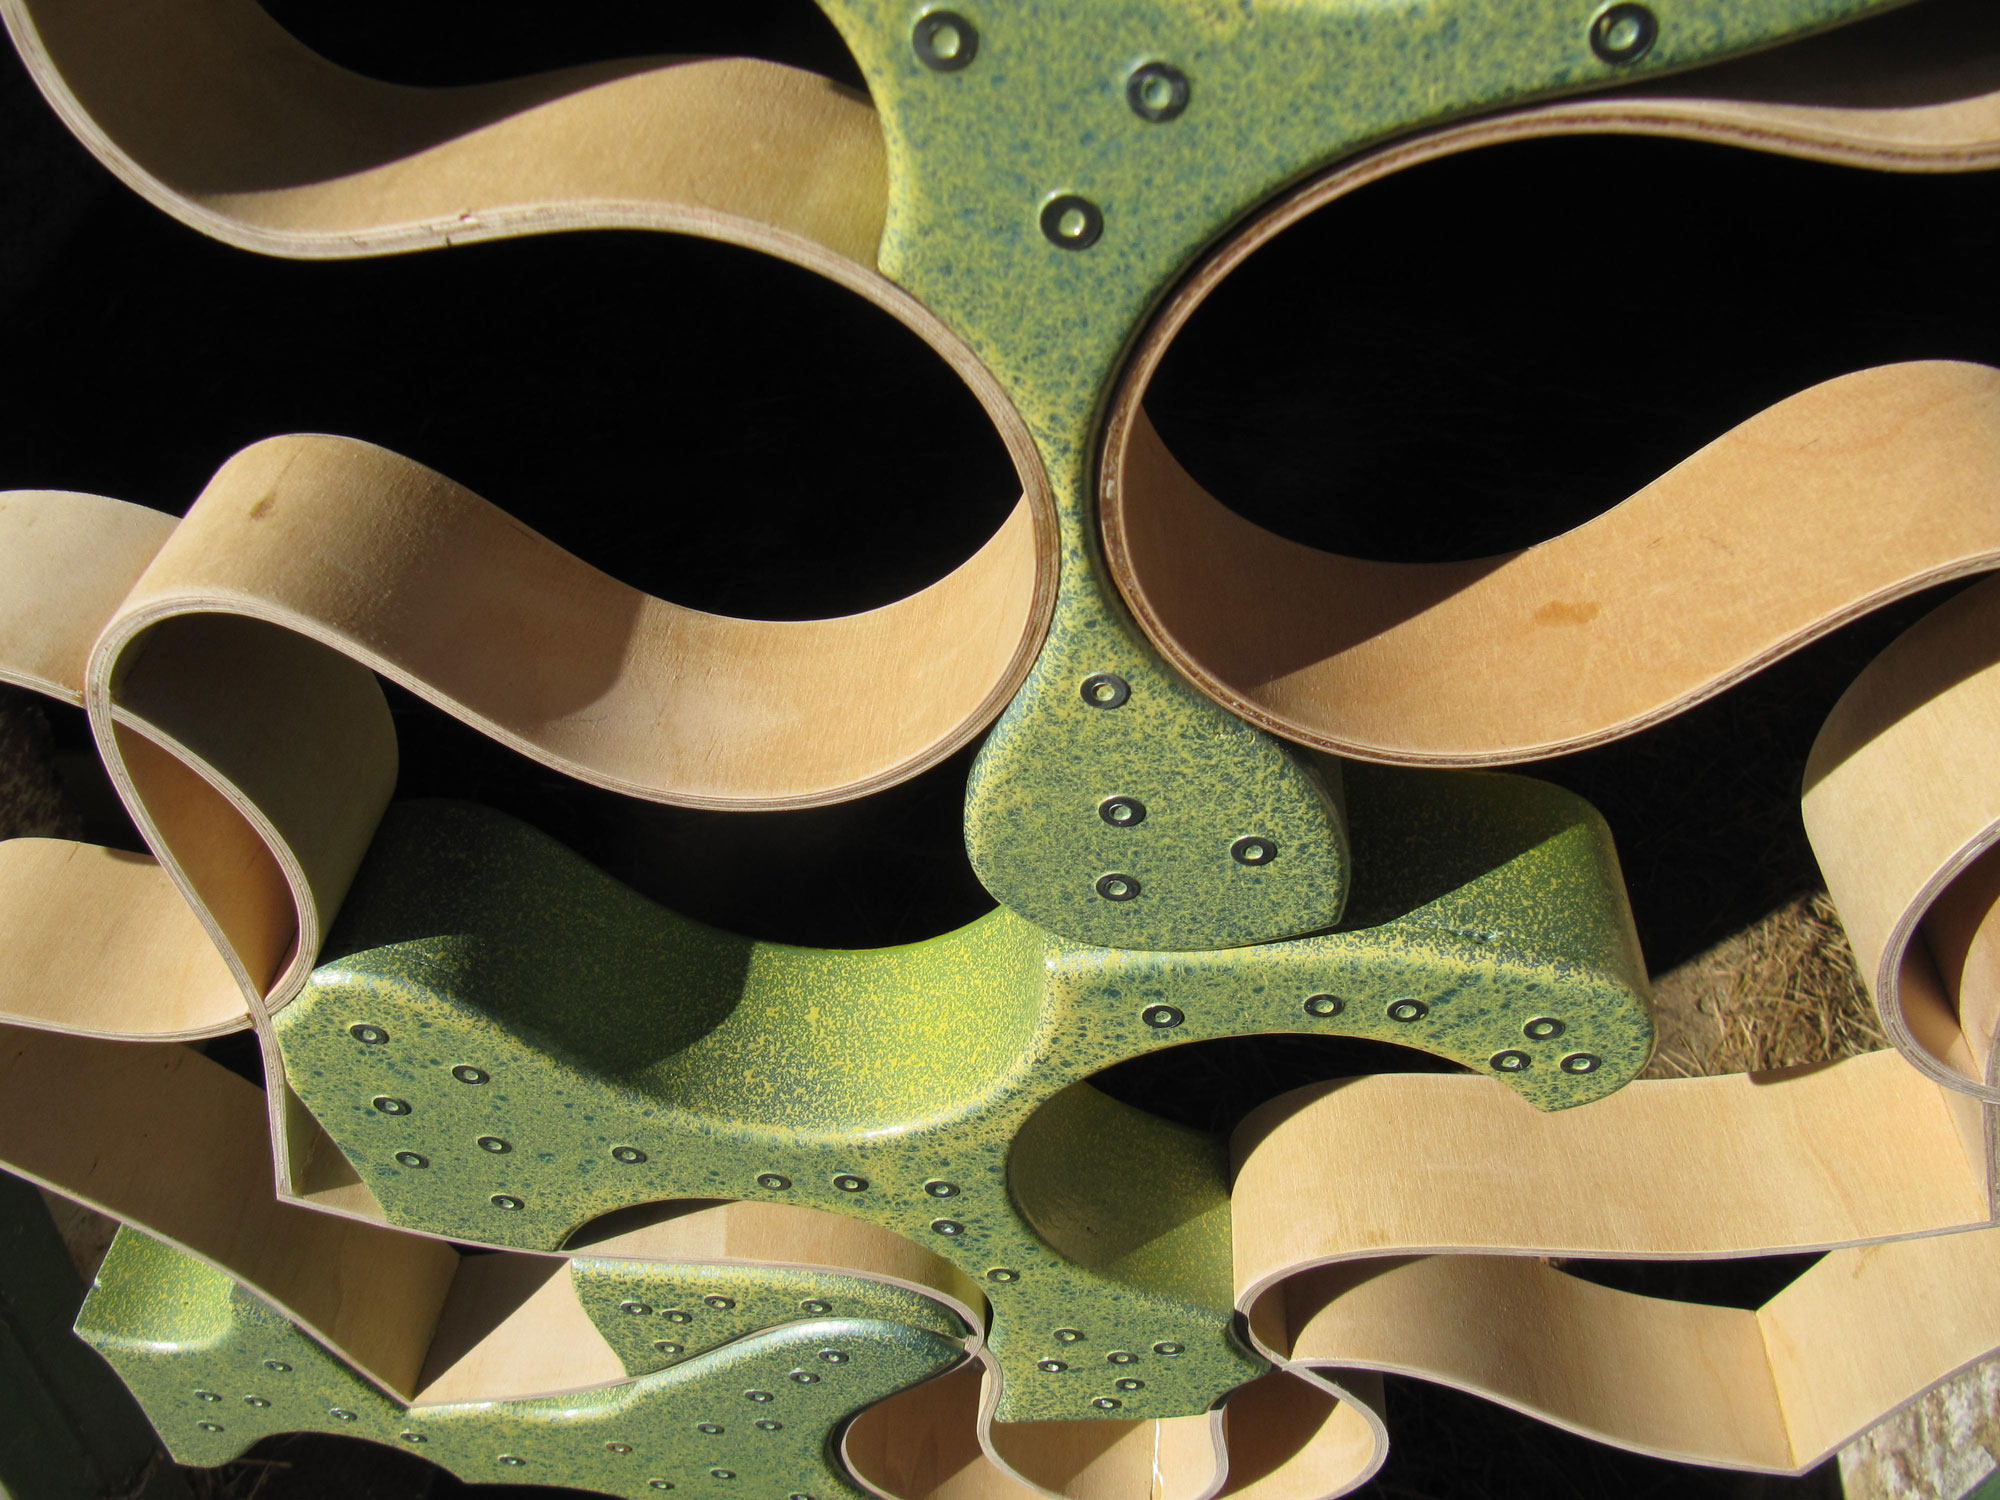 detail of wood and bronze sculpture 'Memories alarmed by the spectre of Alzheimers' with grass-green and lime yellow patina